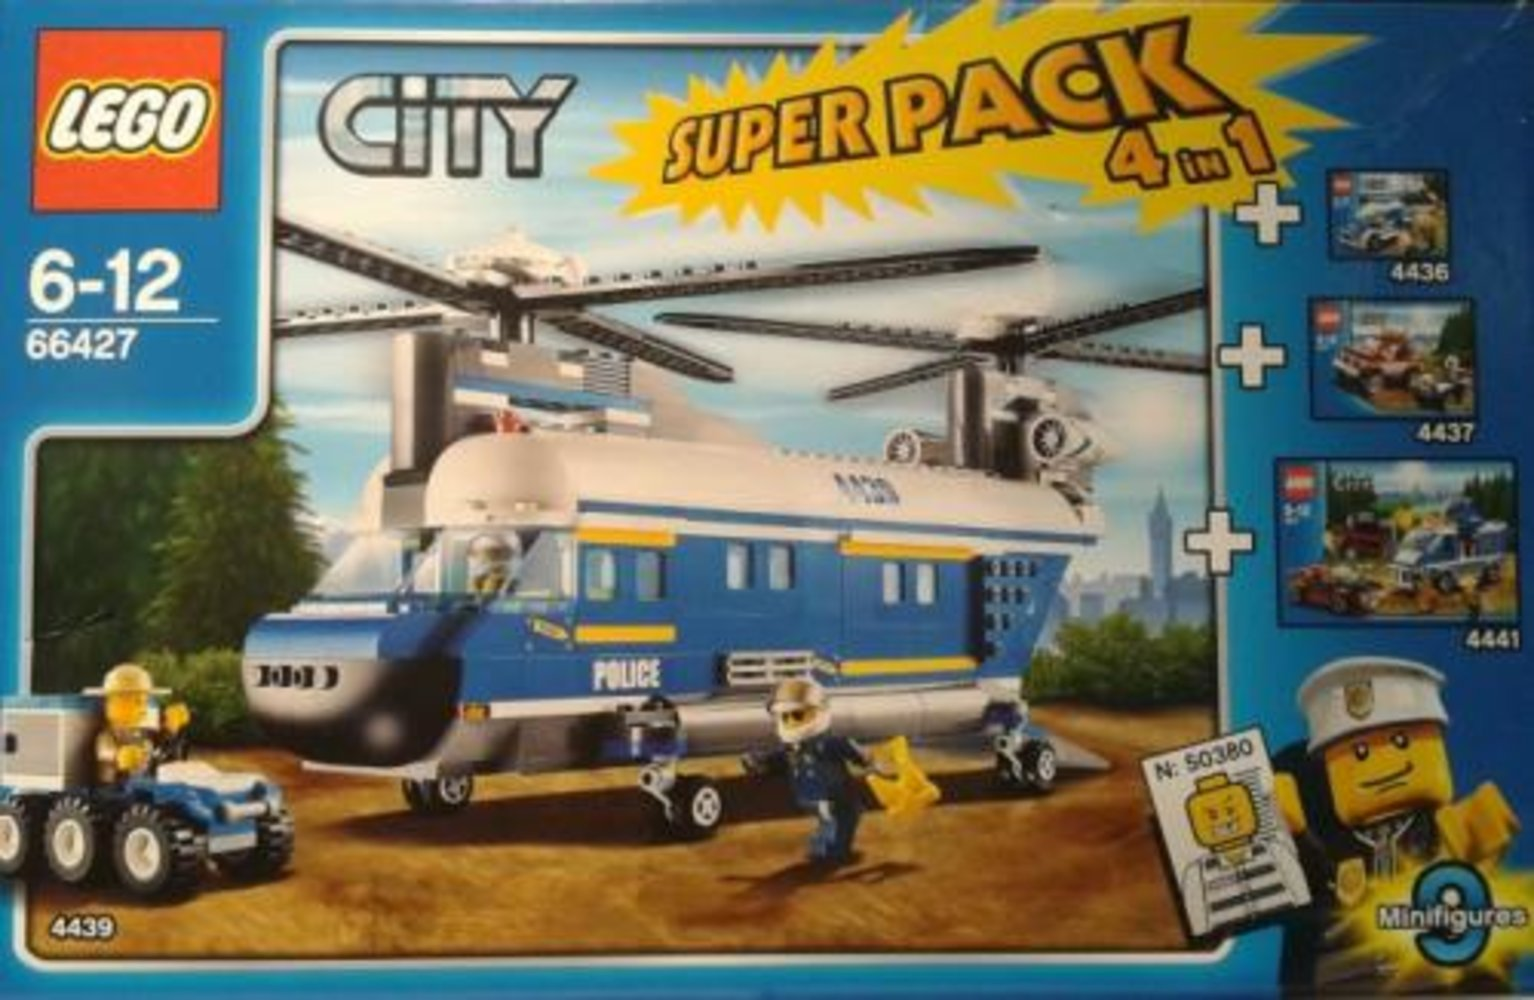 City Super Pack 4 in 1 (4436, 4437, 4439, 4441)